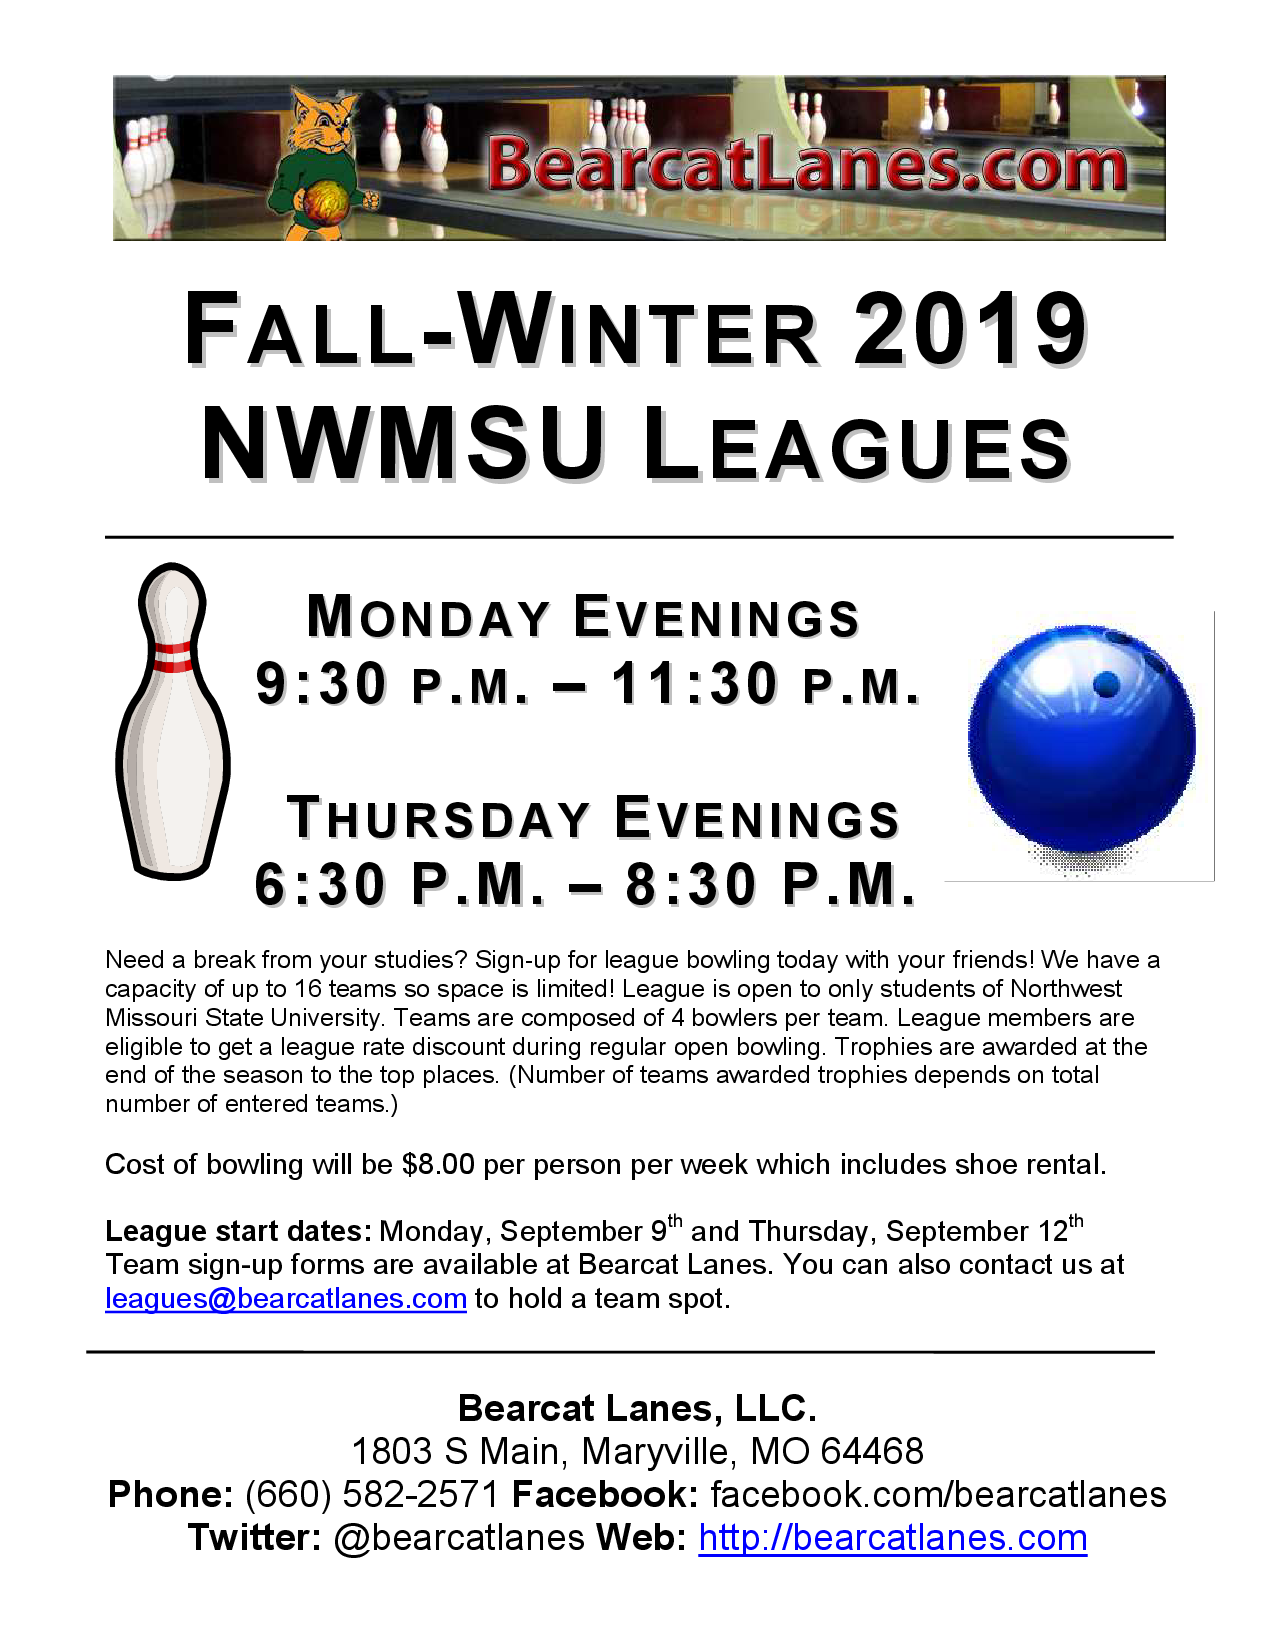 NWMSU League